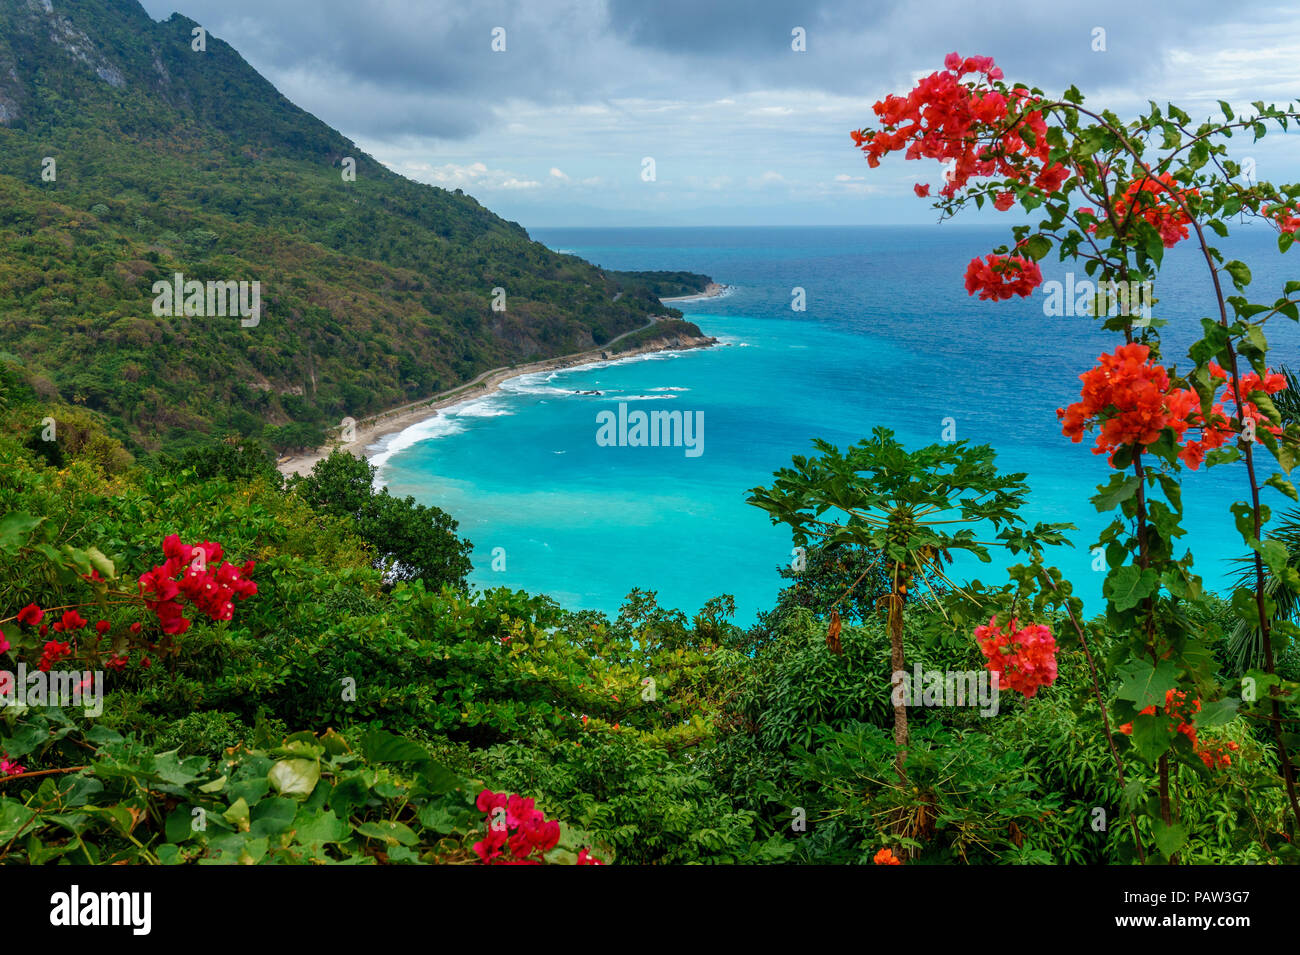 Amazing caribbean view from the green hill to azure sea. Travel concept. Dominican Republic - Stock Image